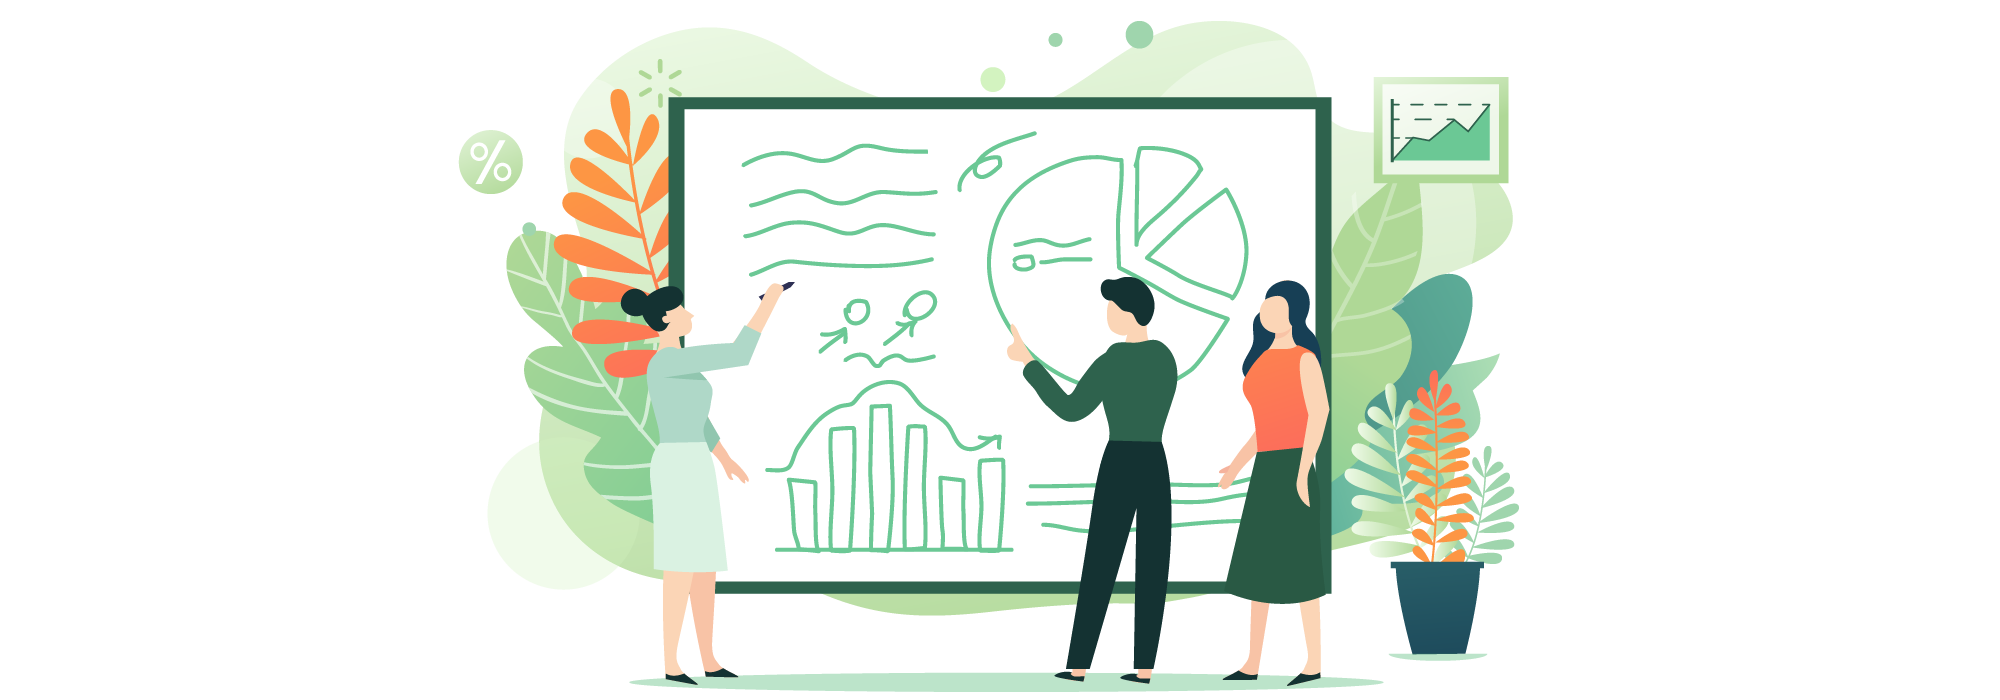 Illustrated image of people standing around a whiteboard - planning